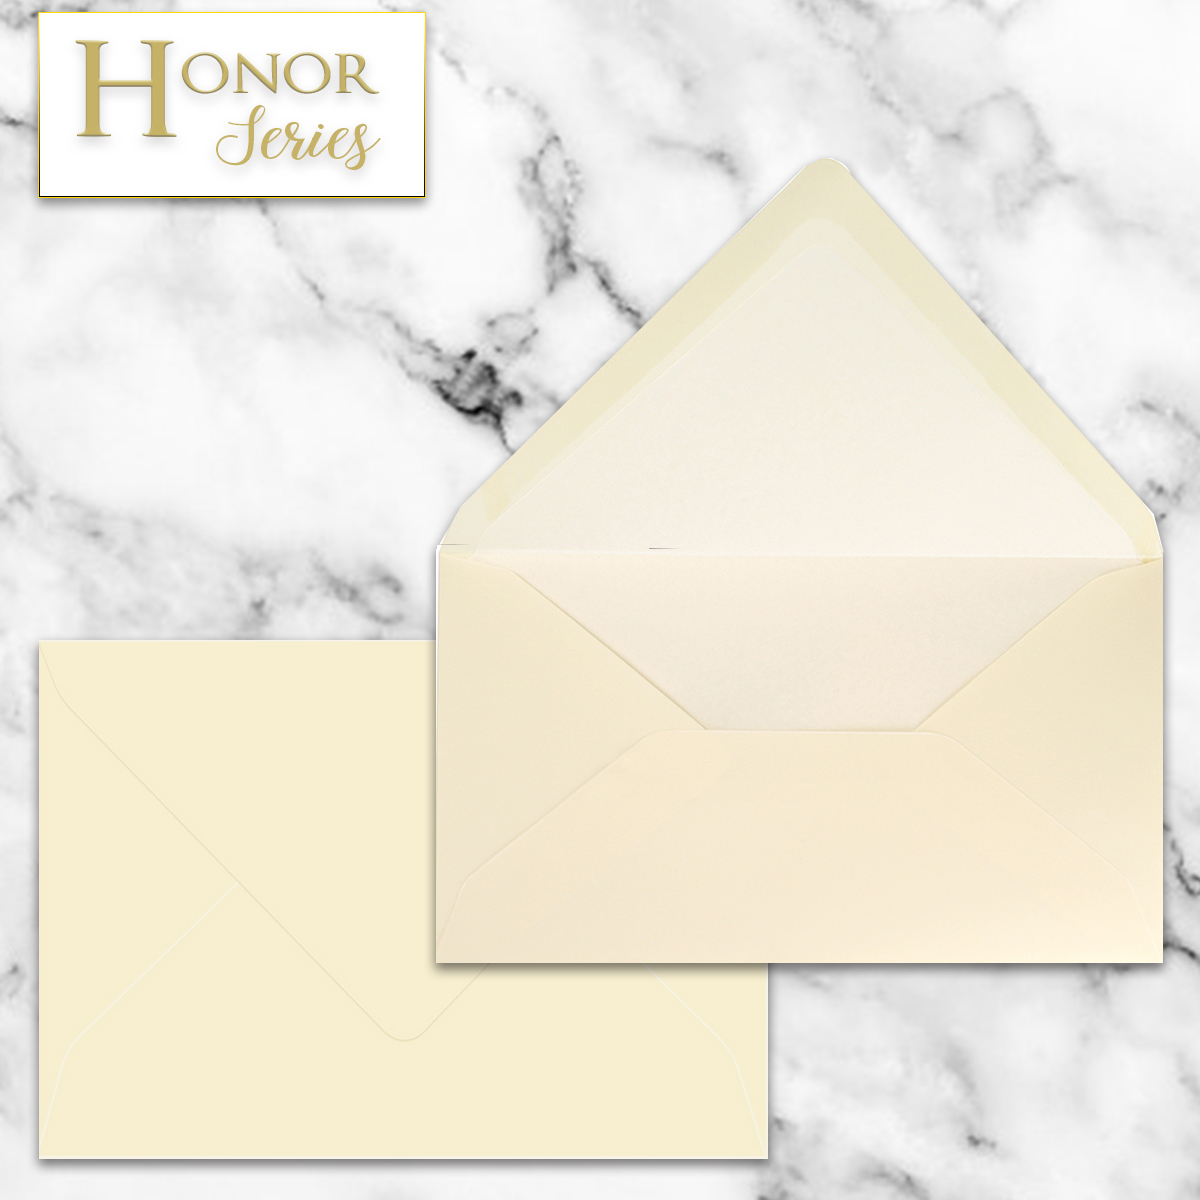 Honor Series - Light Cream EA5 Envelope - 25 Ct